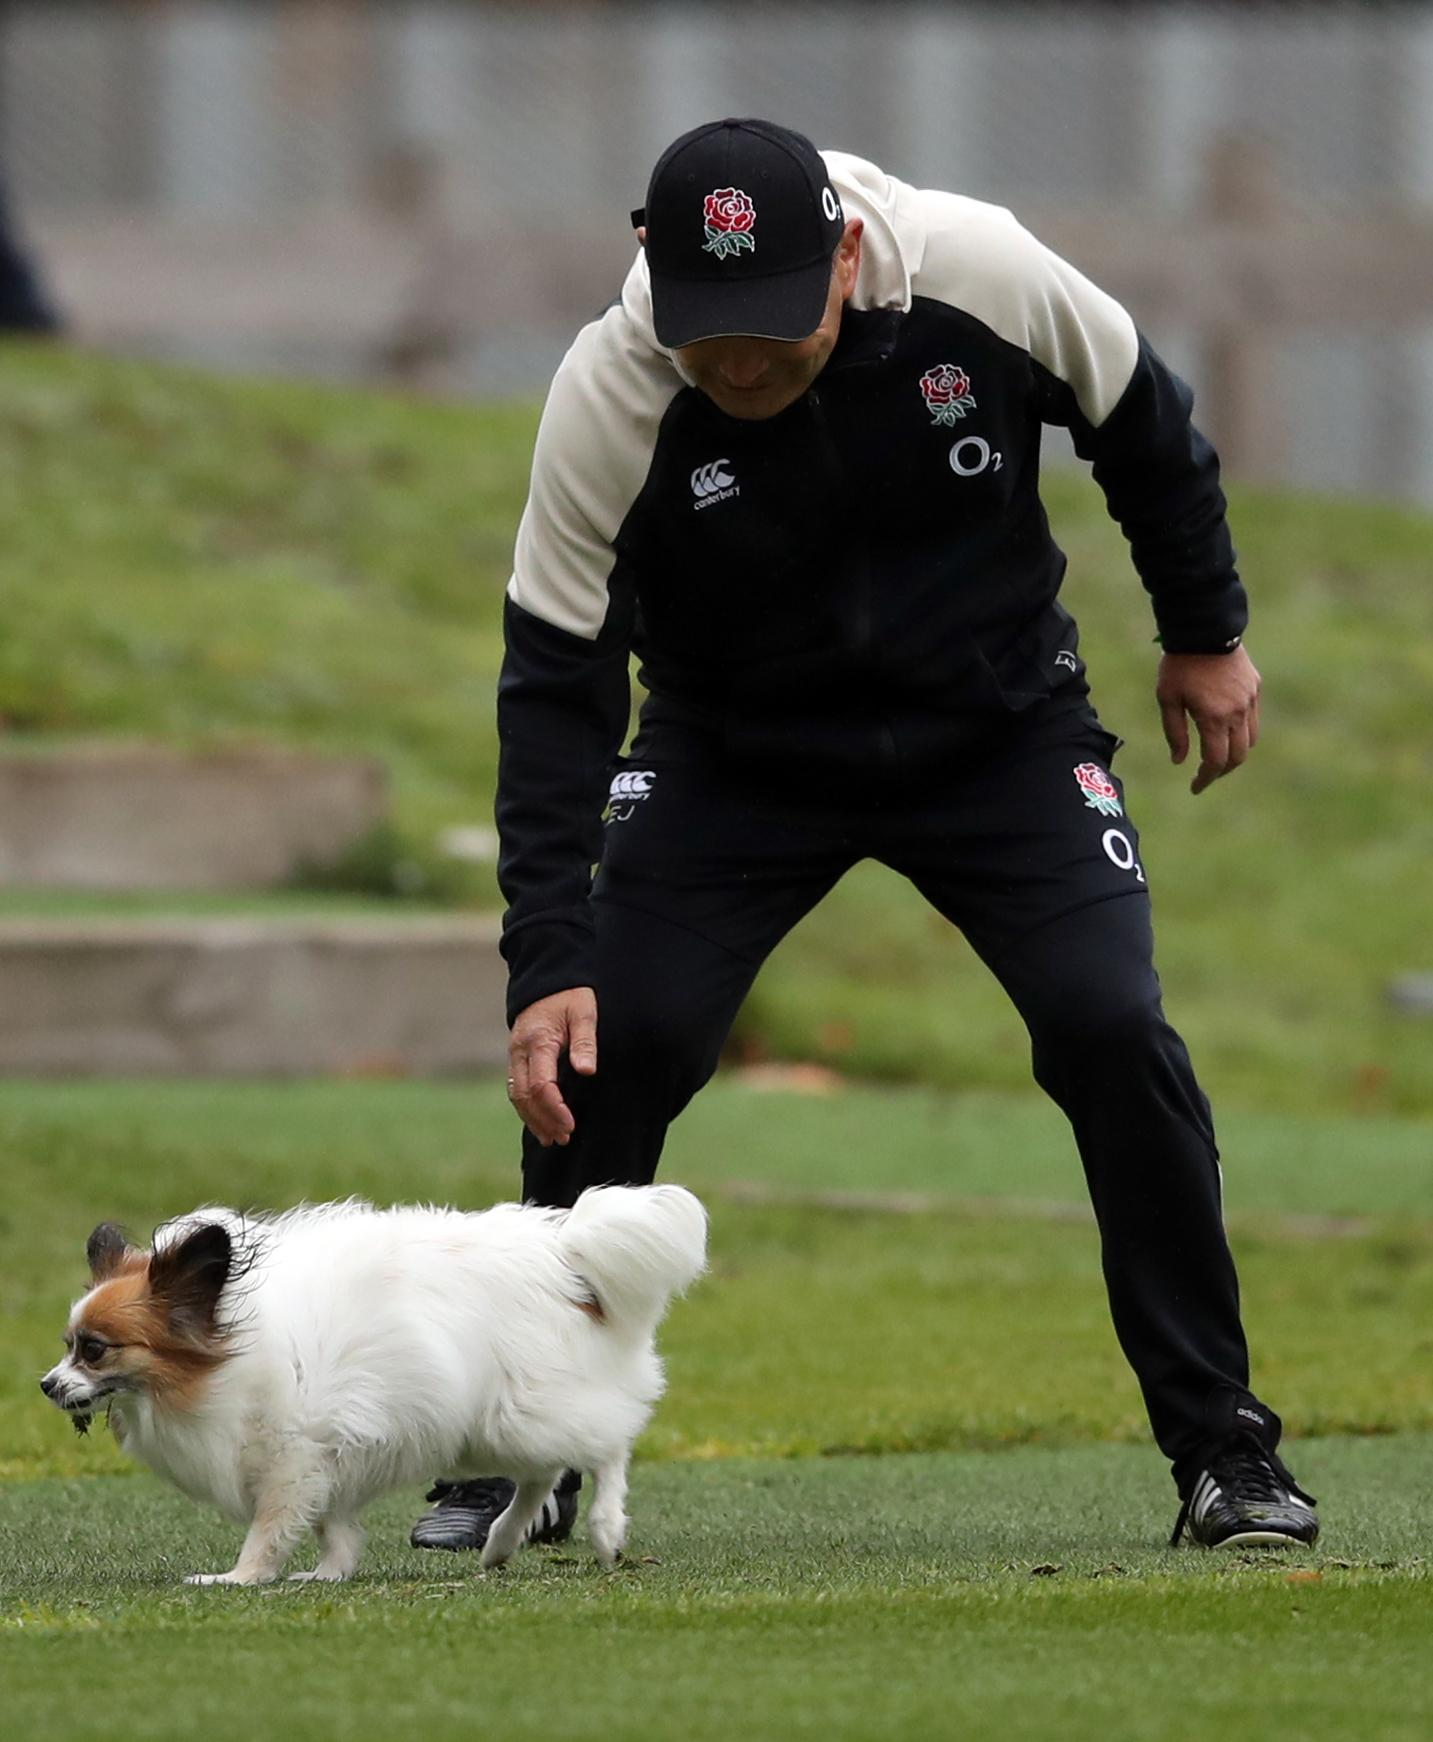 Jones chasing his dog Annie - and he wants a performance worthy of a film script against the world champions